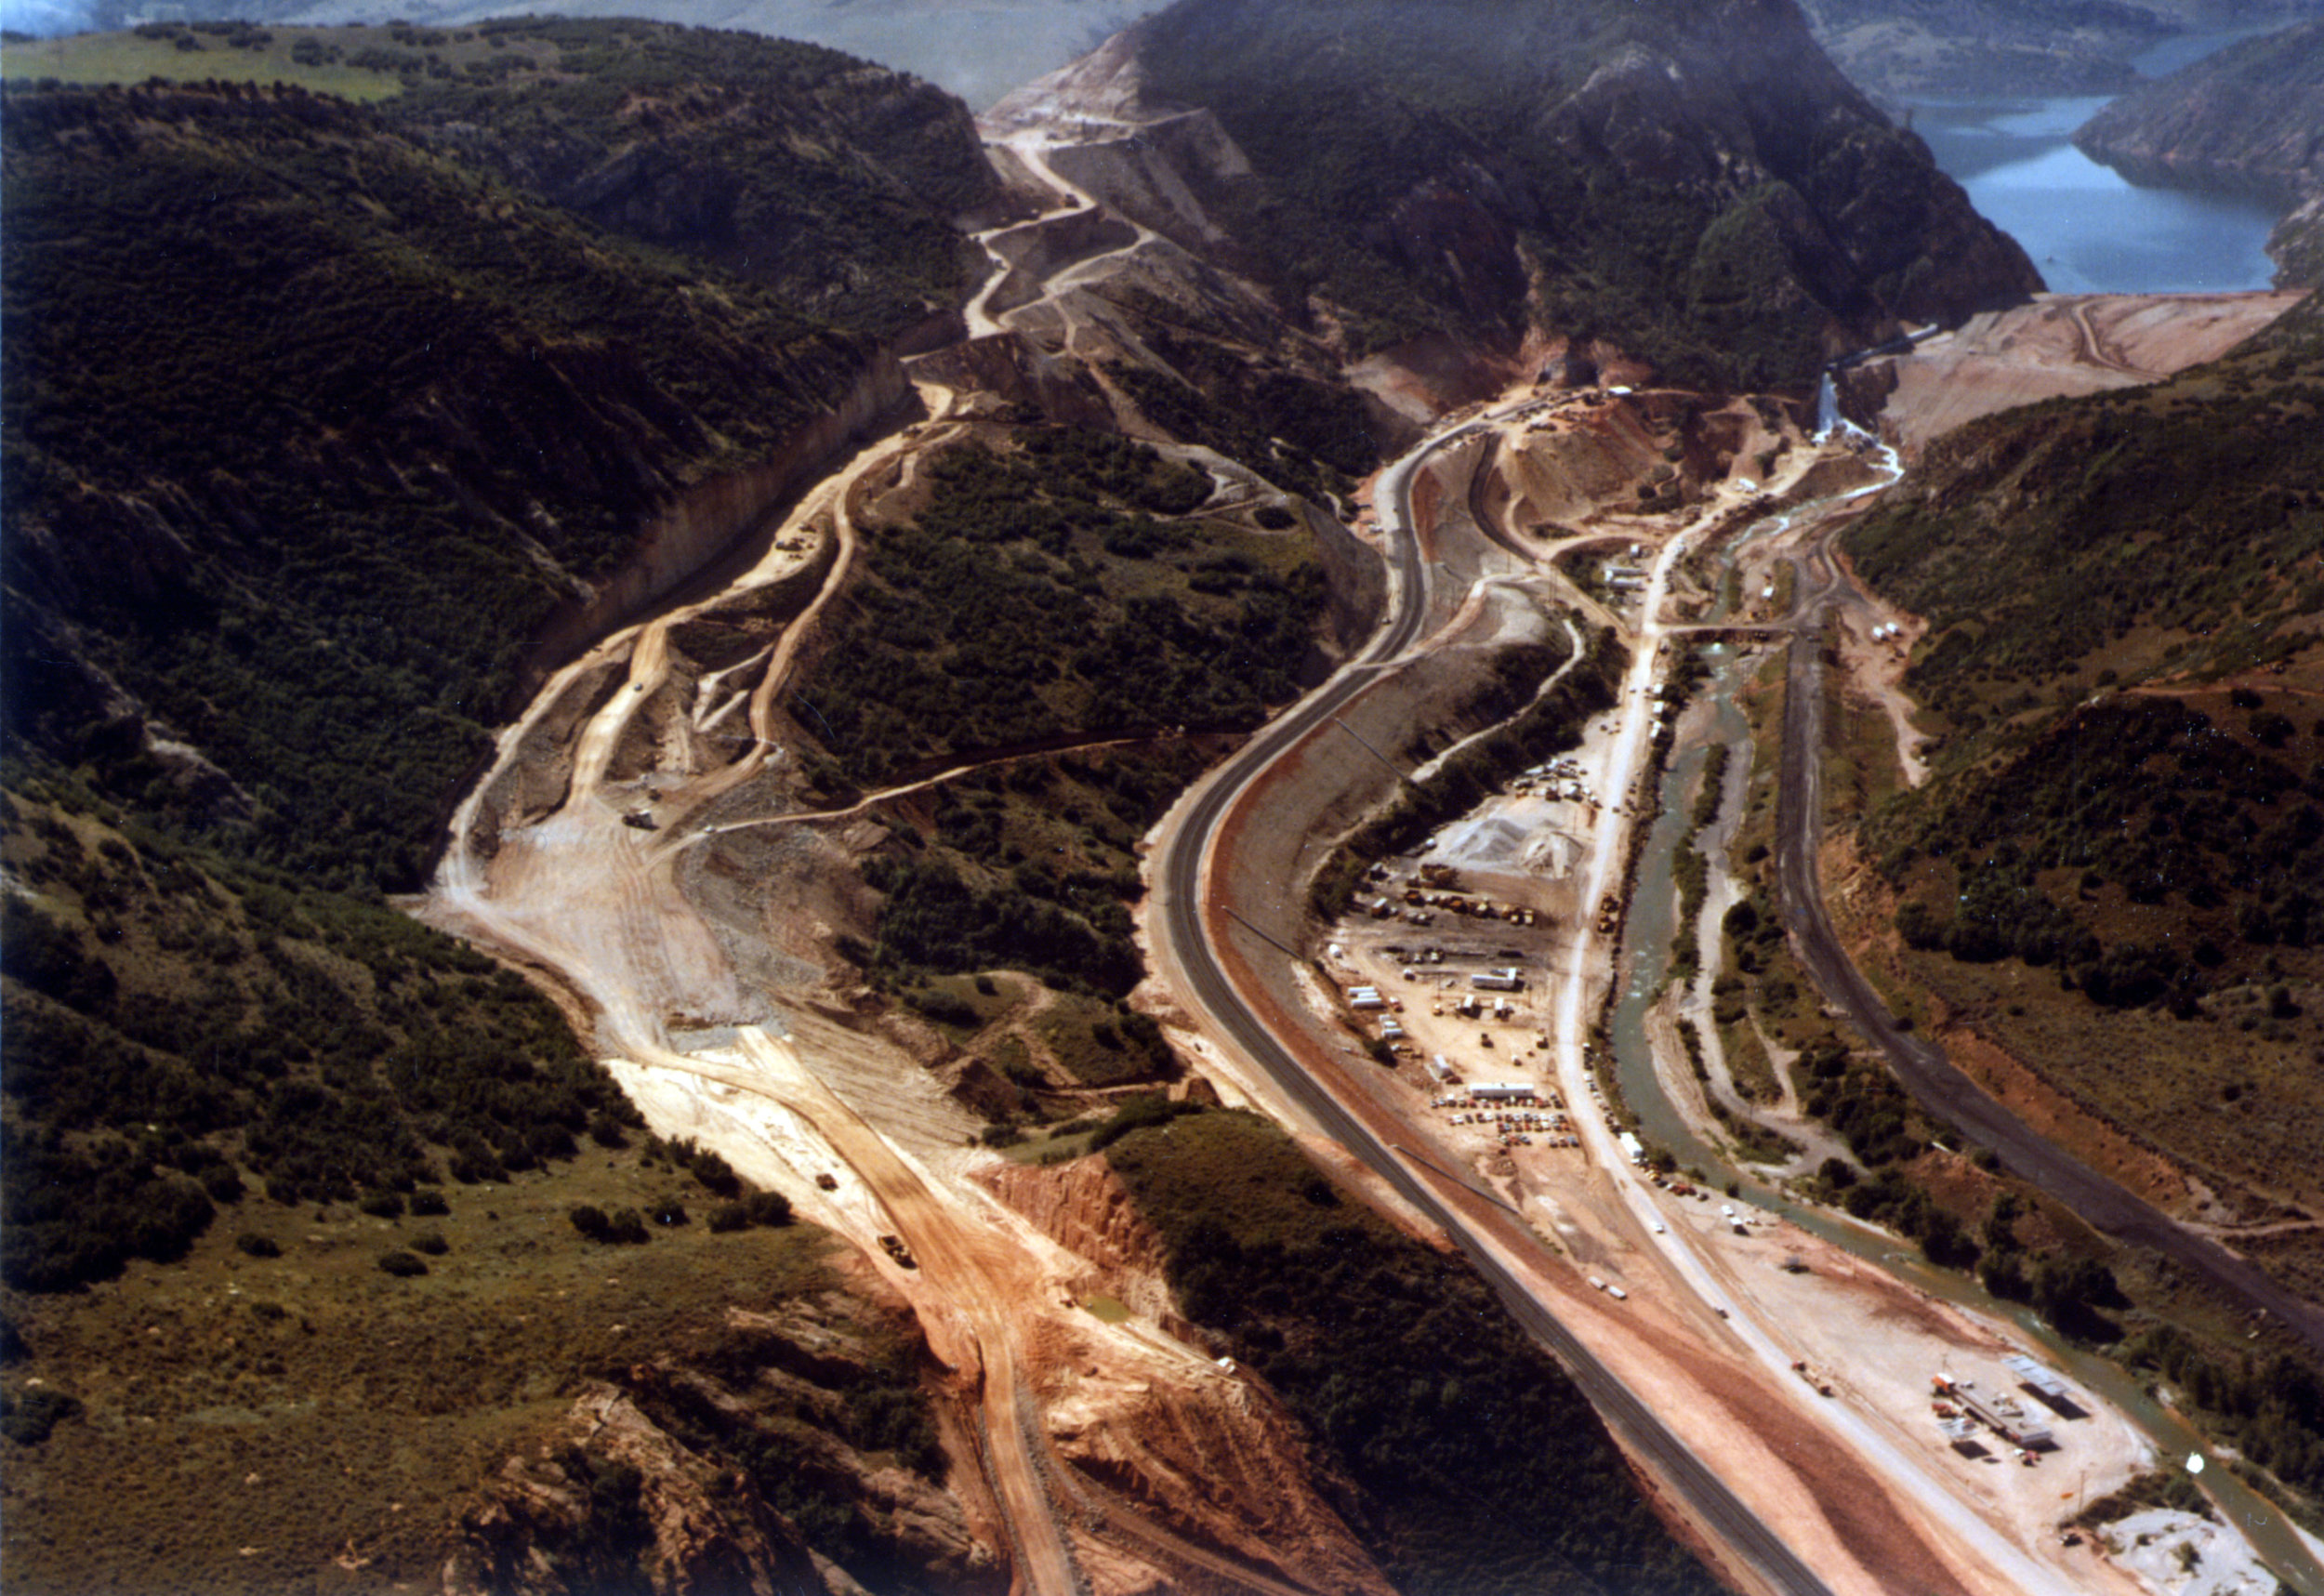 Creation of the new Highway 6 (left side of the photo) and new D&RG rail line in August 1983. Photo courtesy of the Utah State Archives and Records Service.